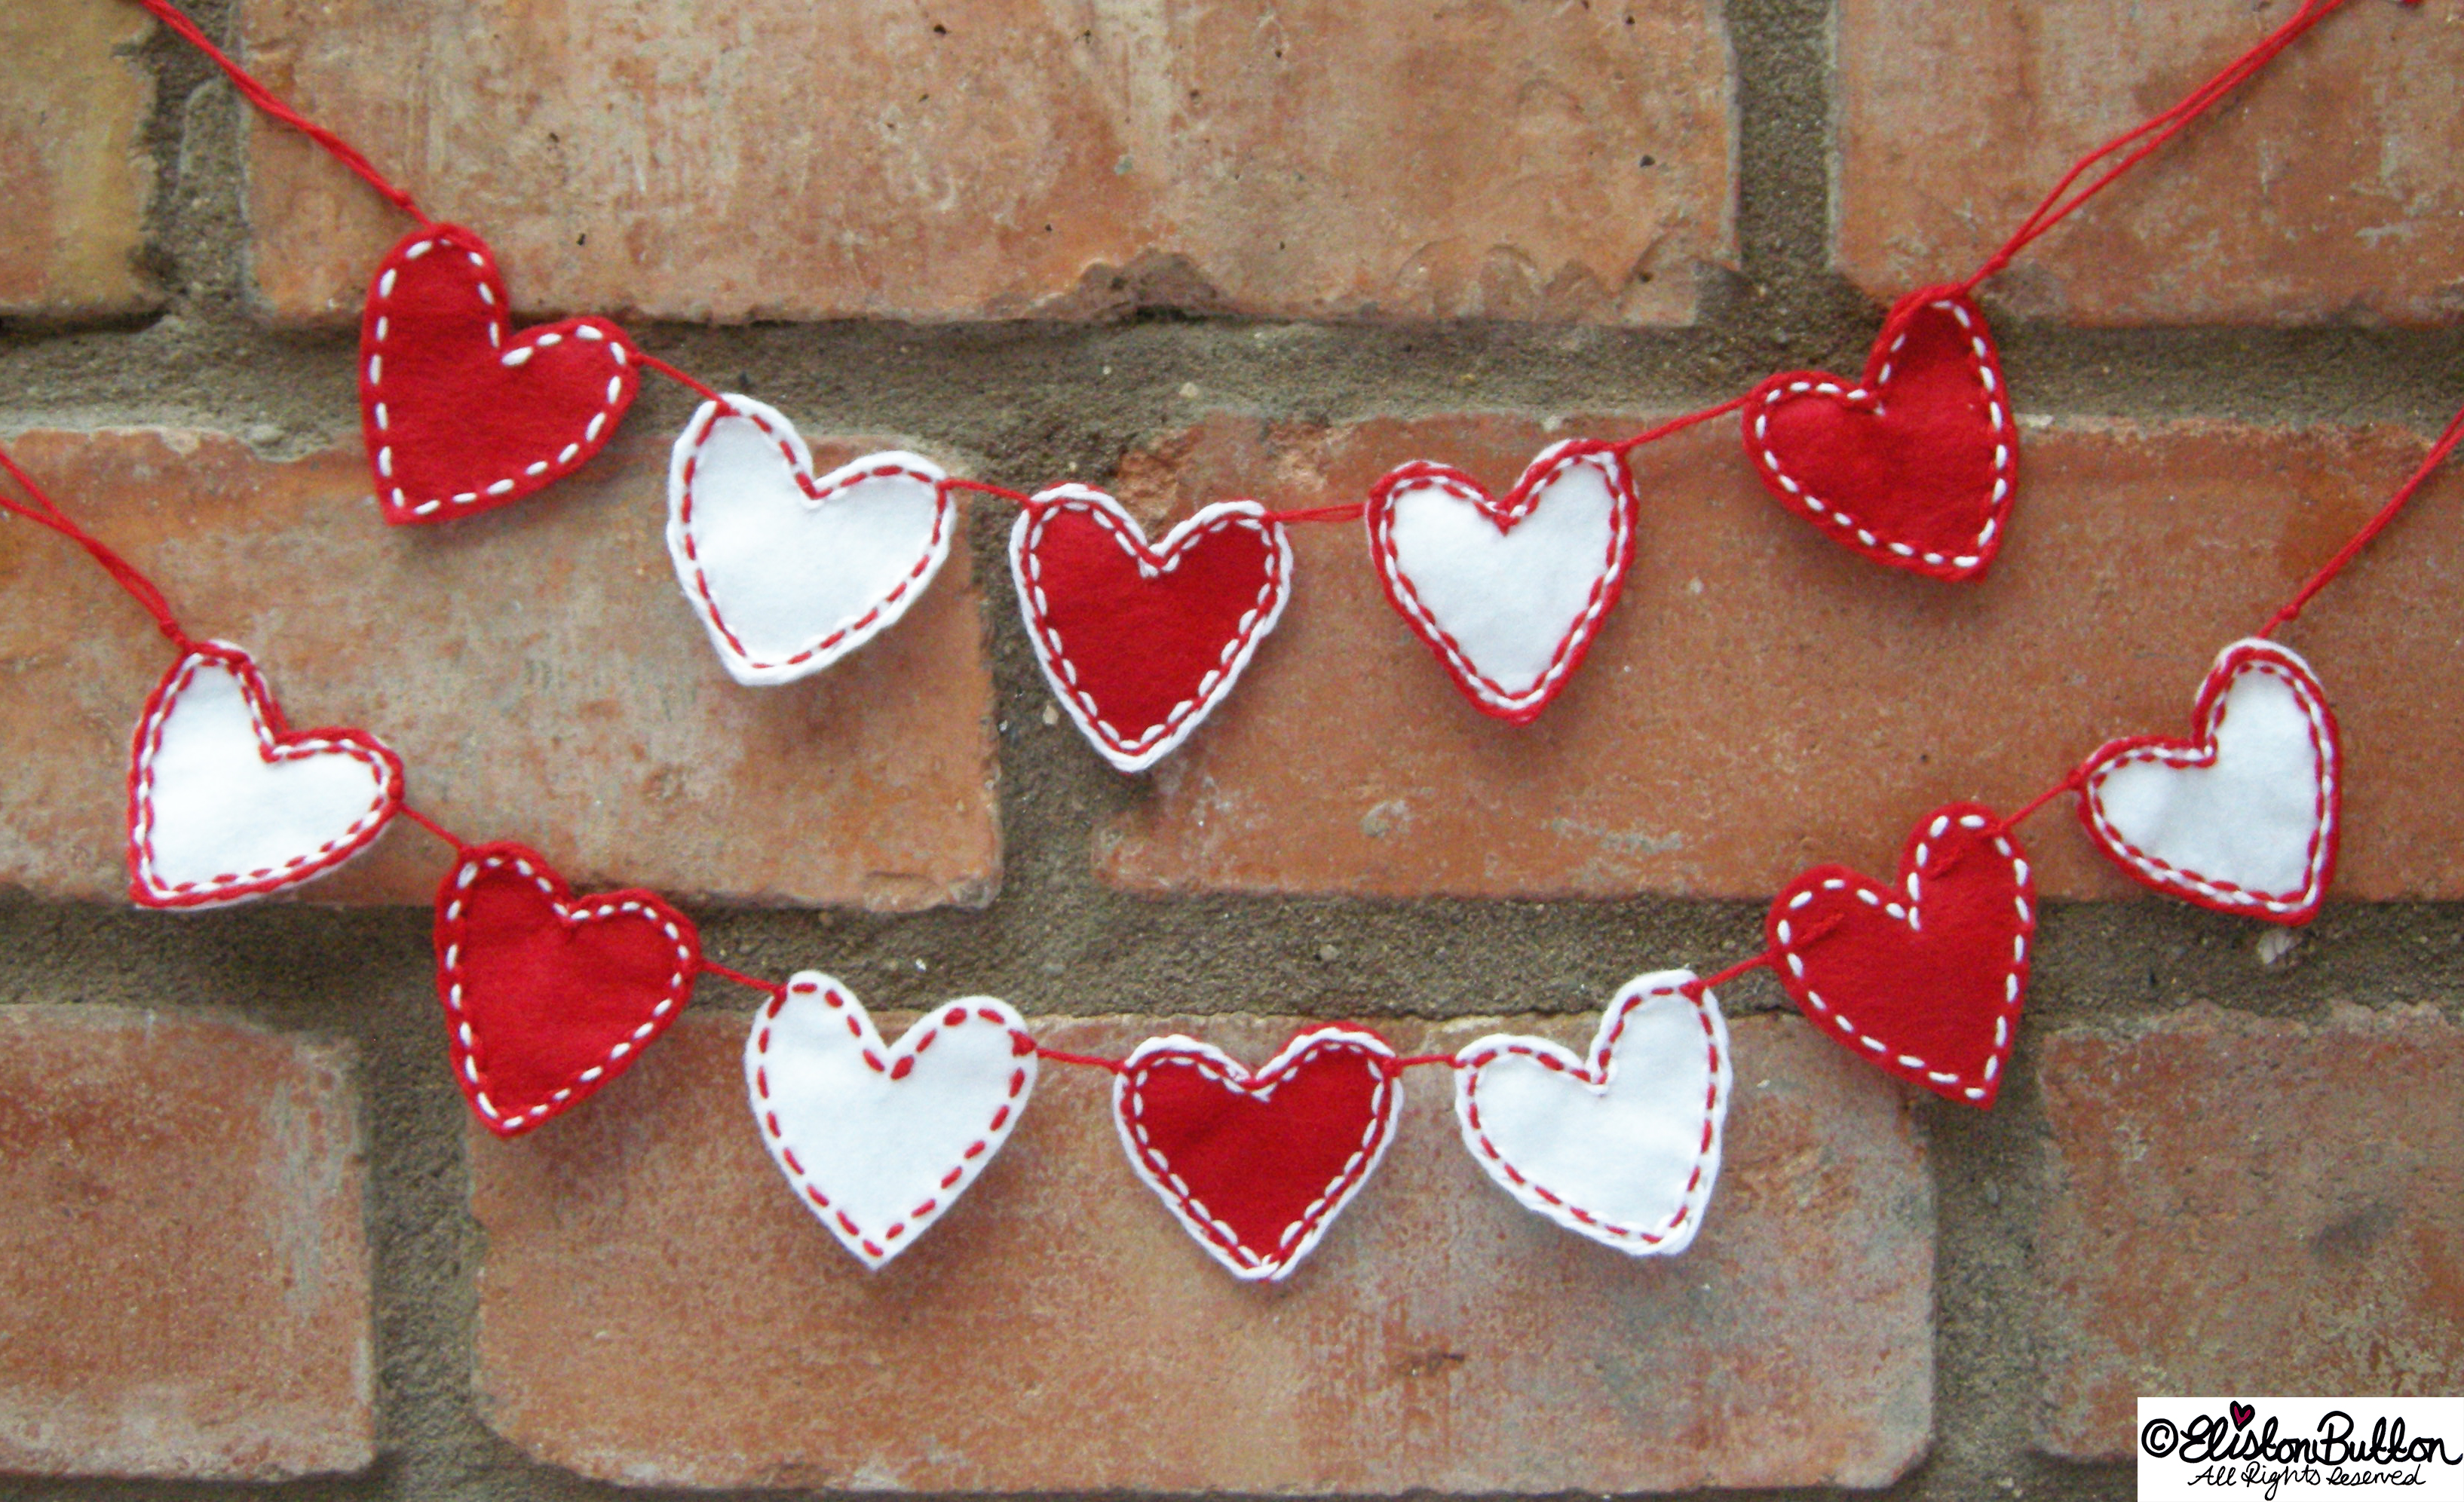 I Give You My Heart (Garland) Brick Background - I Give You My Heart (Garland) at www.elistonbutton.com - Eliston Button - That Crafty Kid – Art, Design, Craft & Adventure.